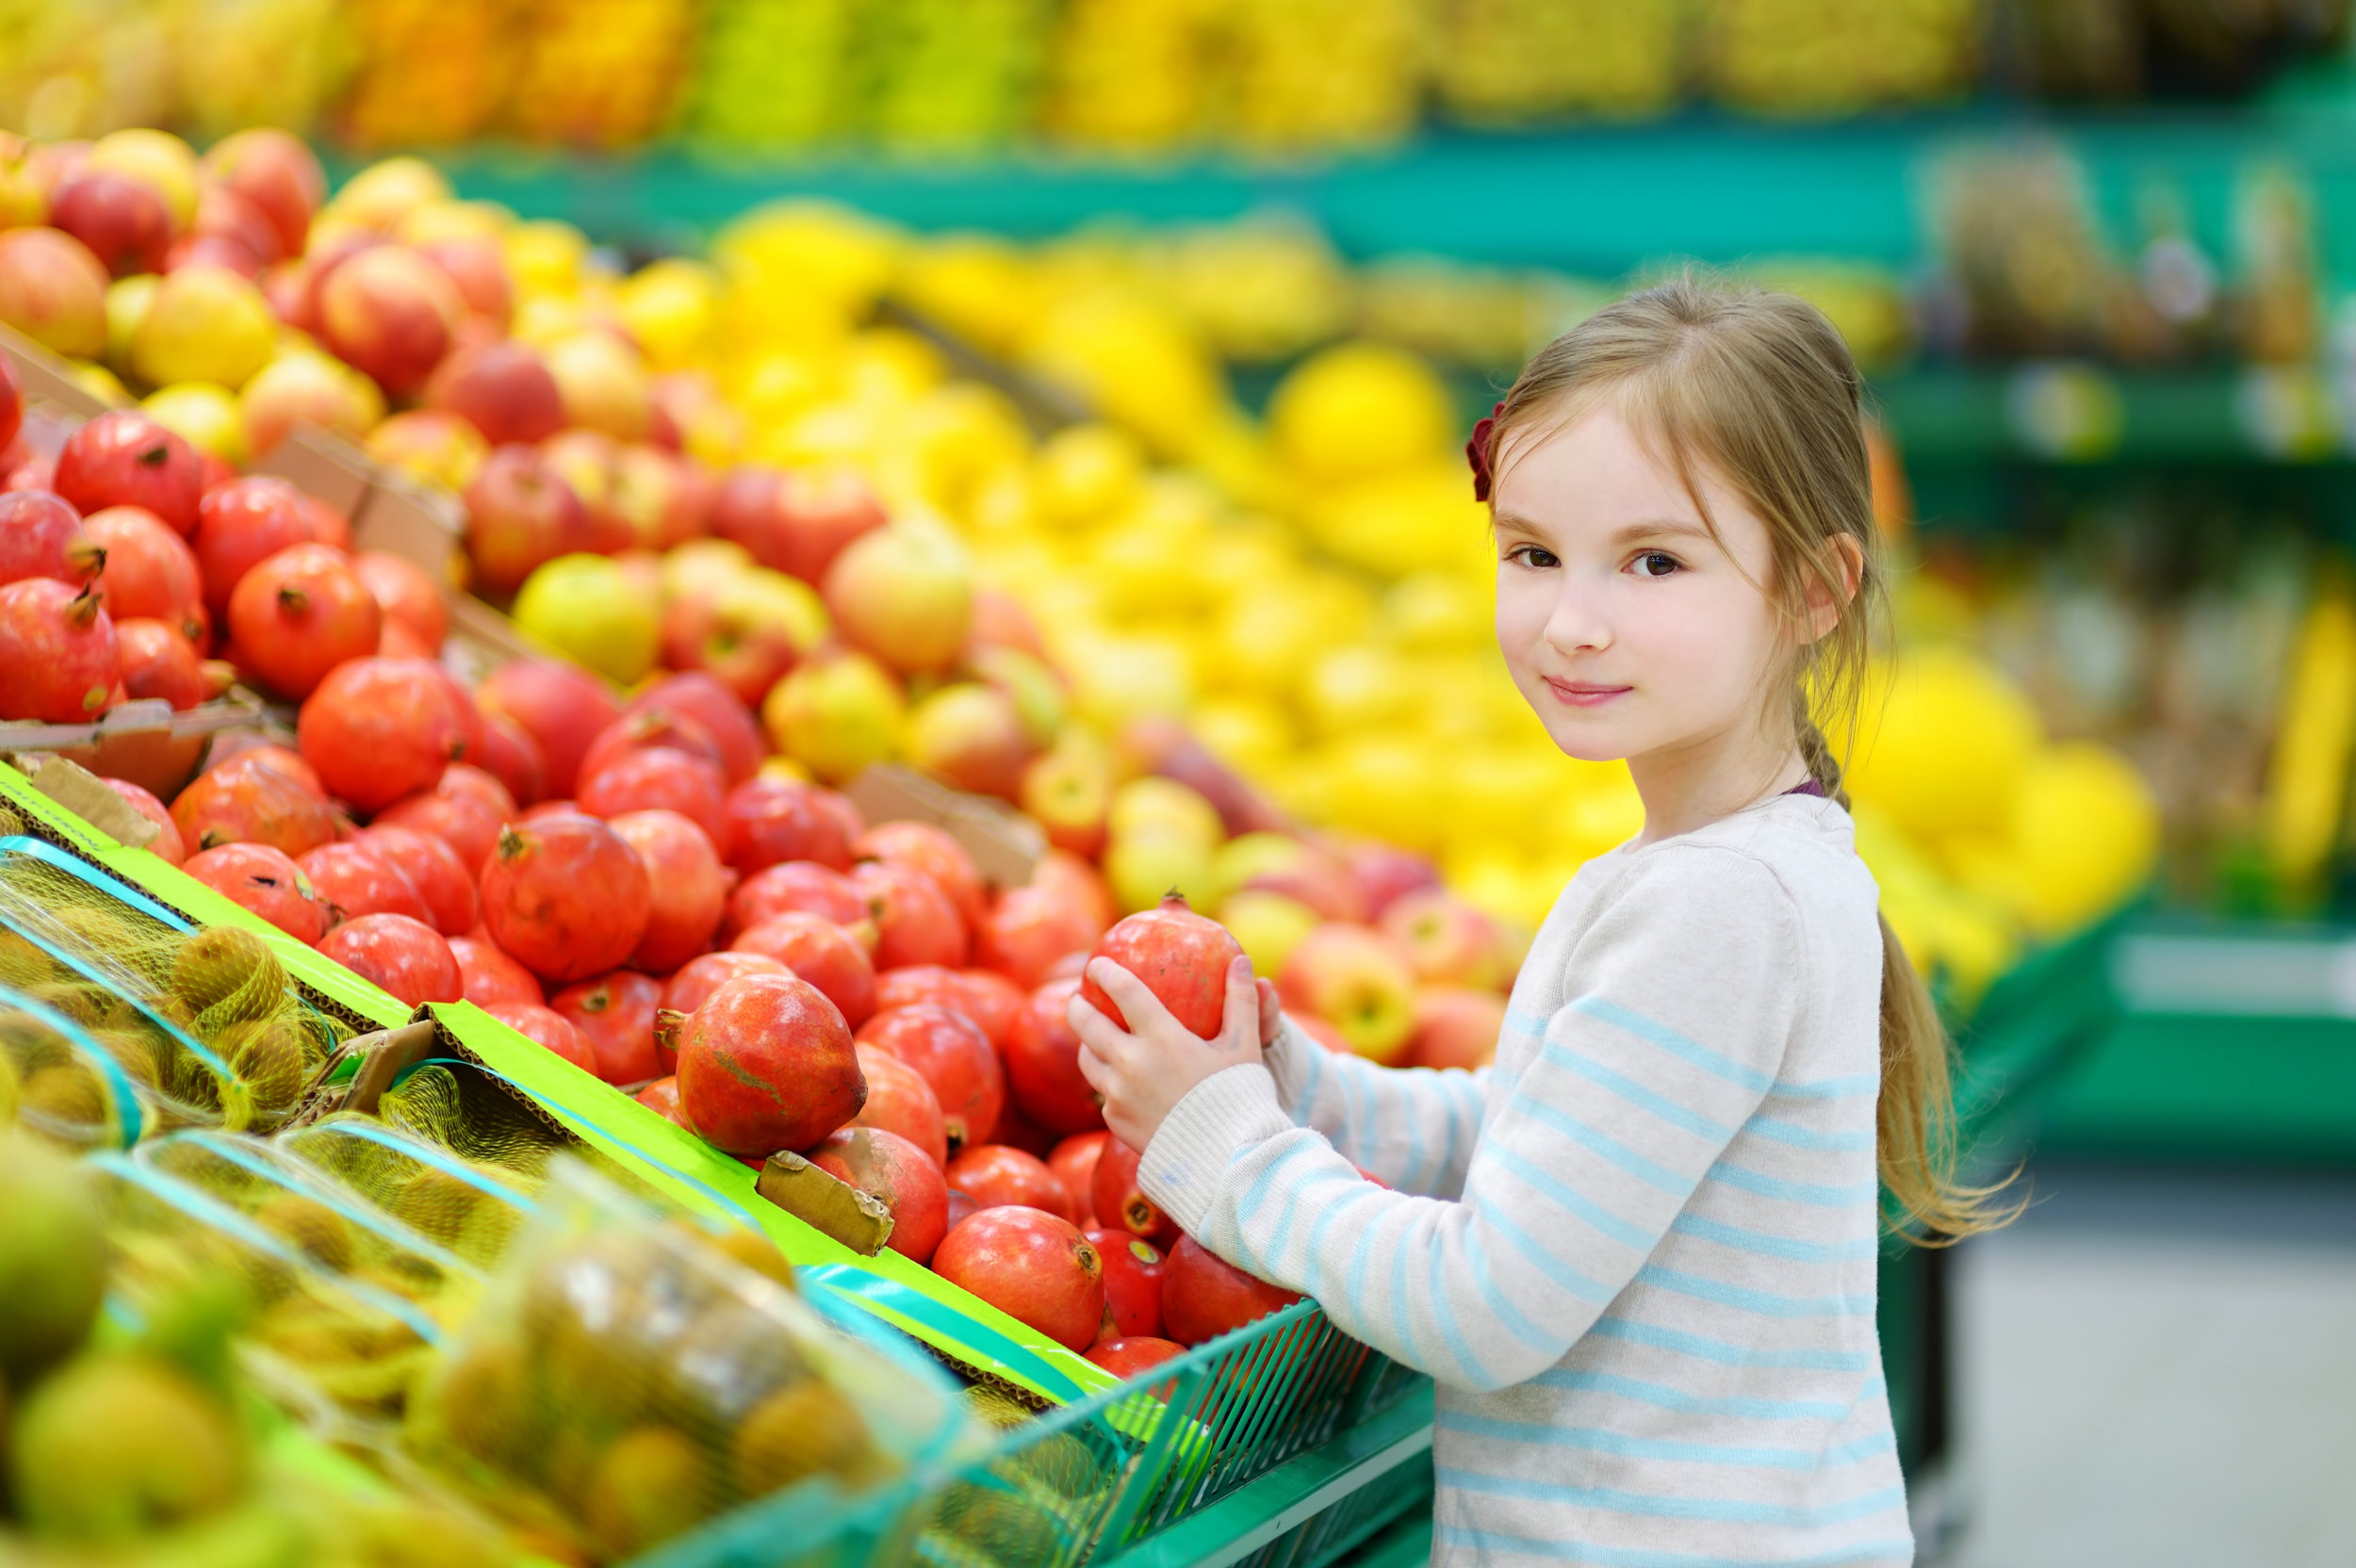 Bringing kids with you to the grocery store is an important part of cooking.